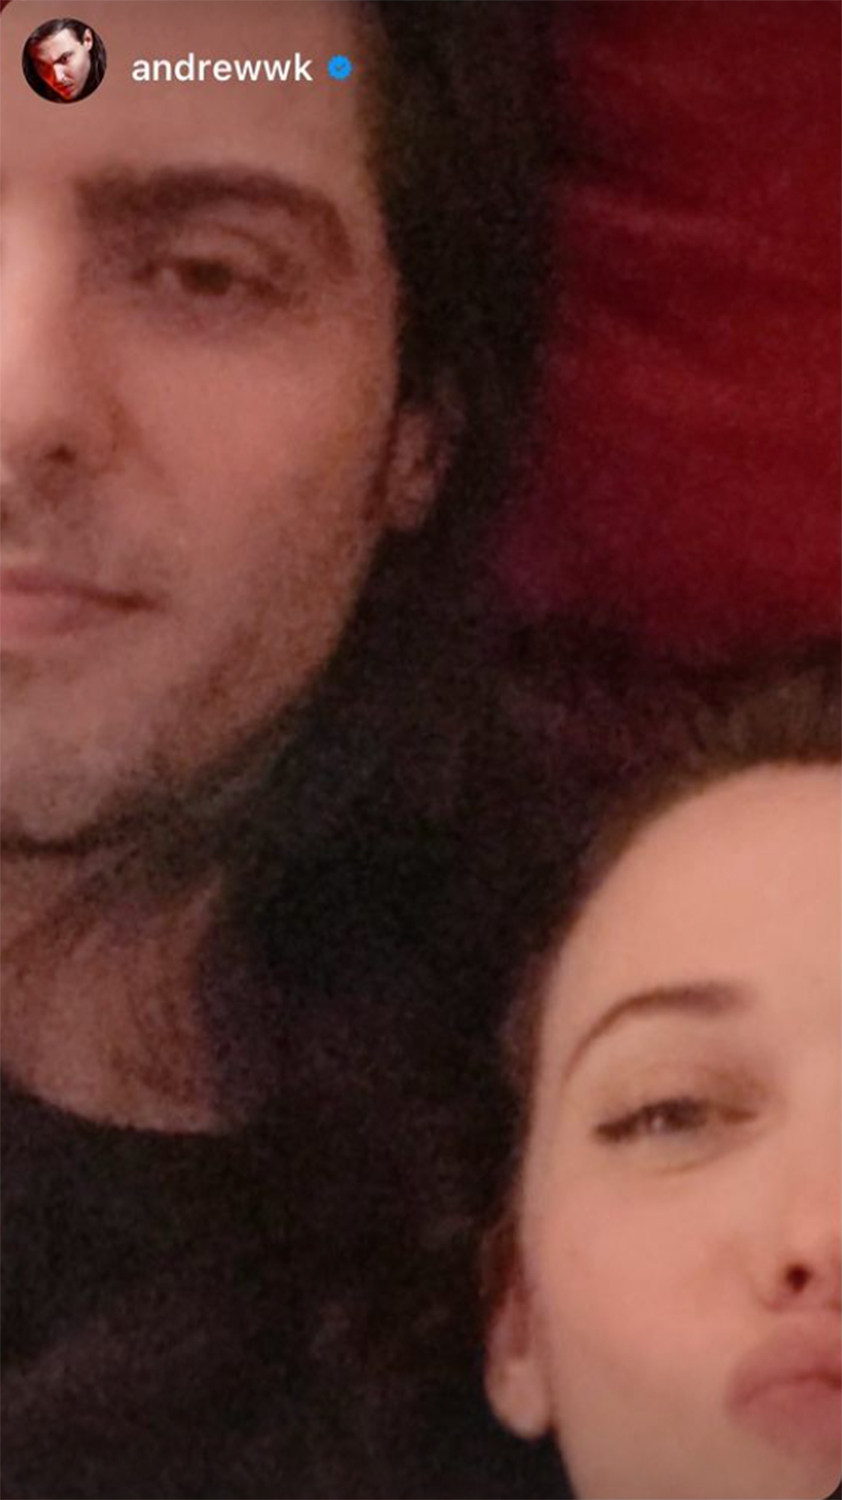 Kat Dennings and Andrew WK